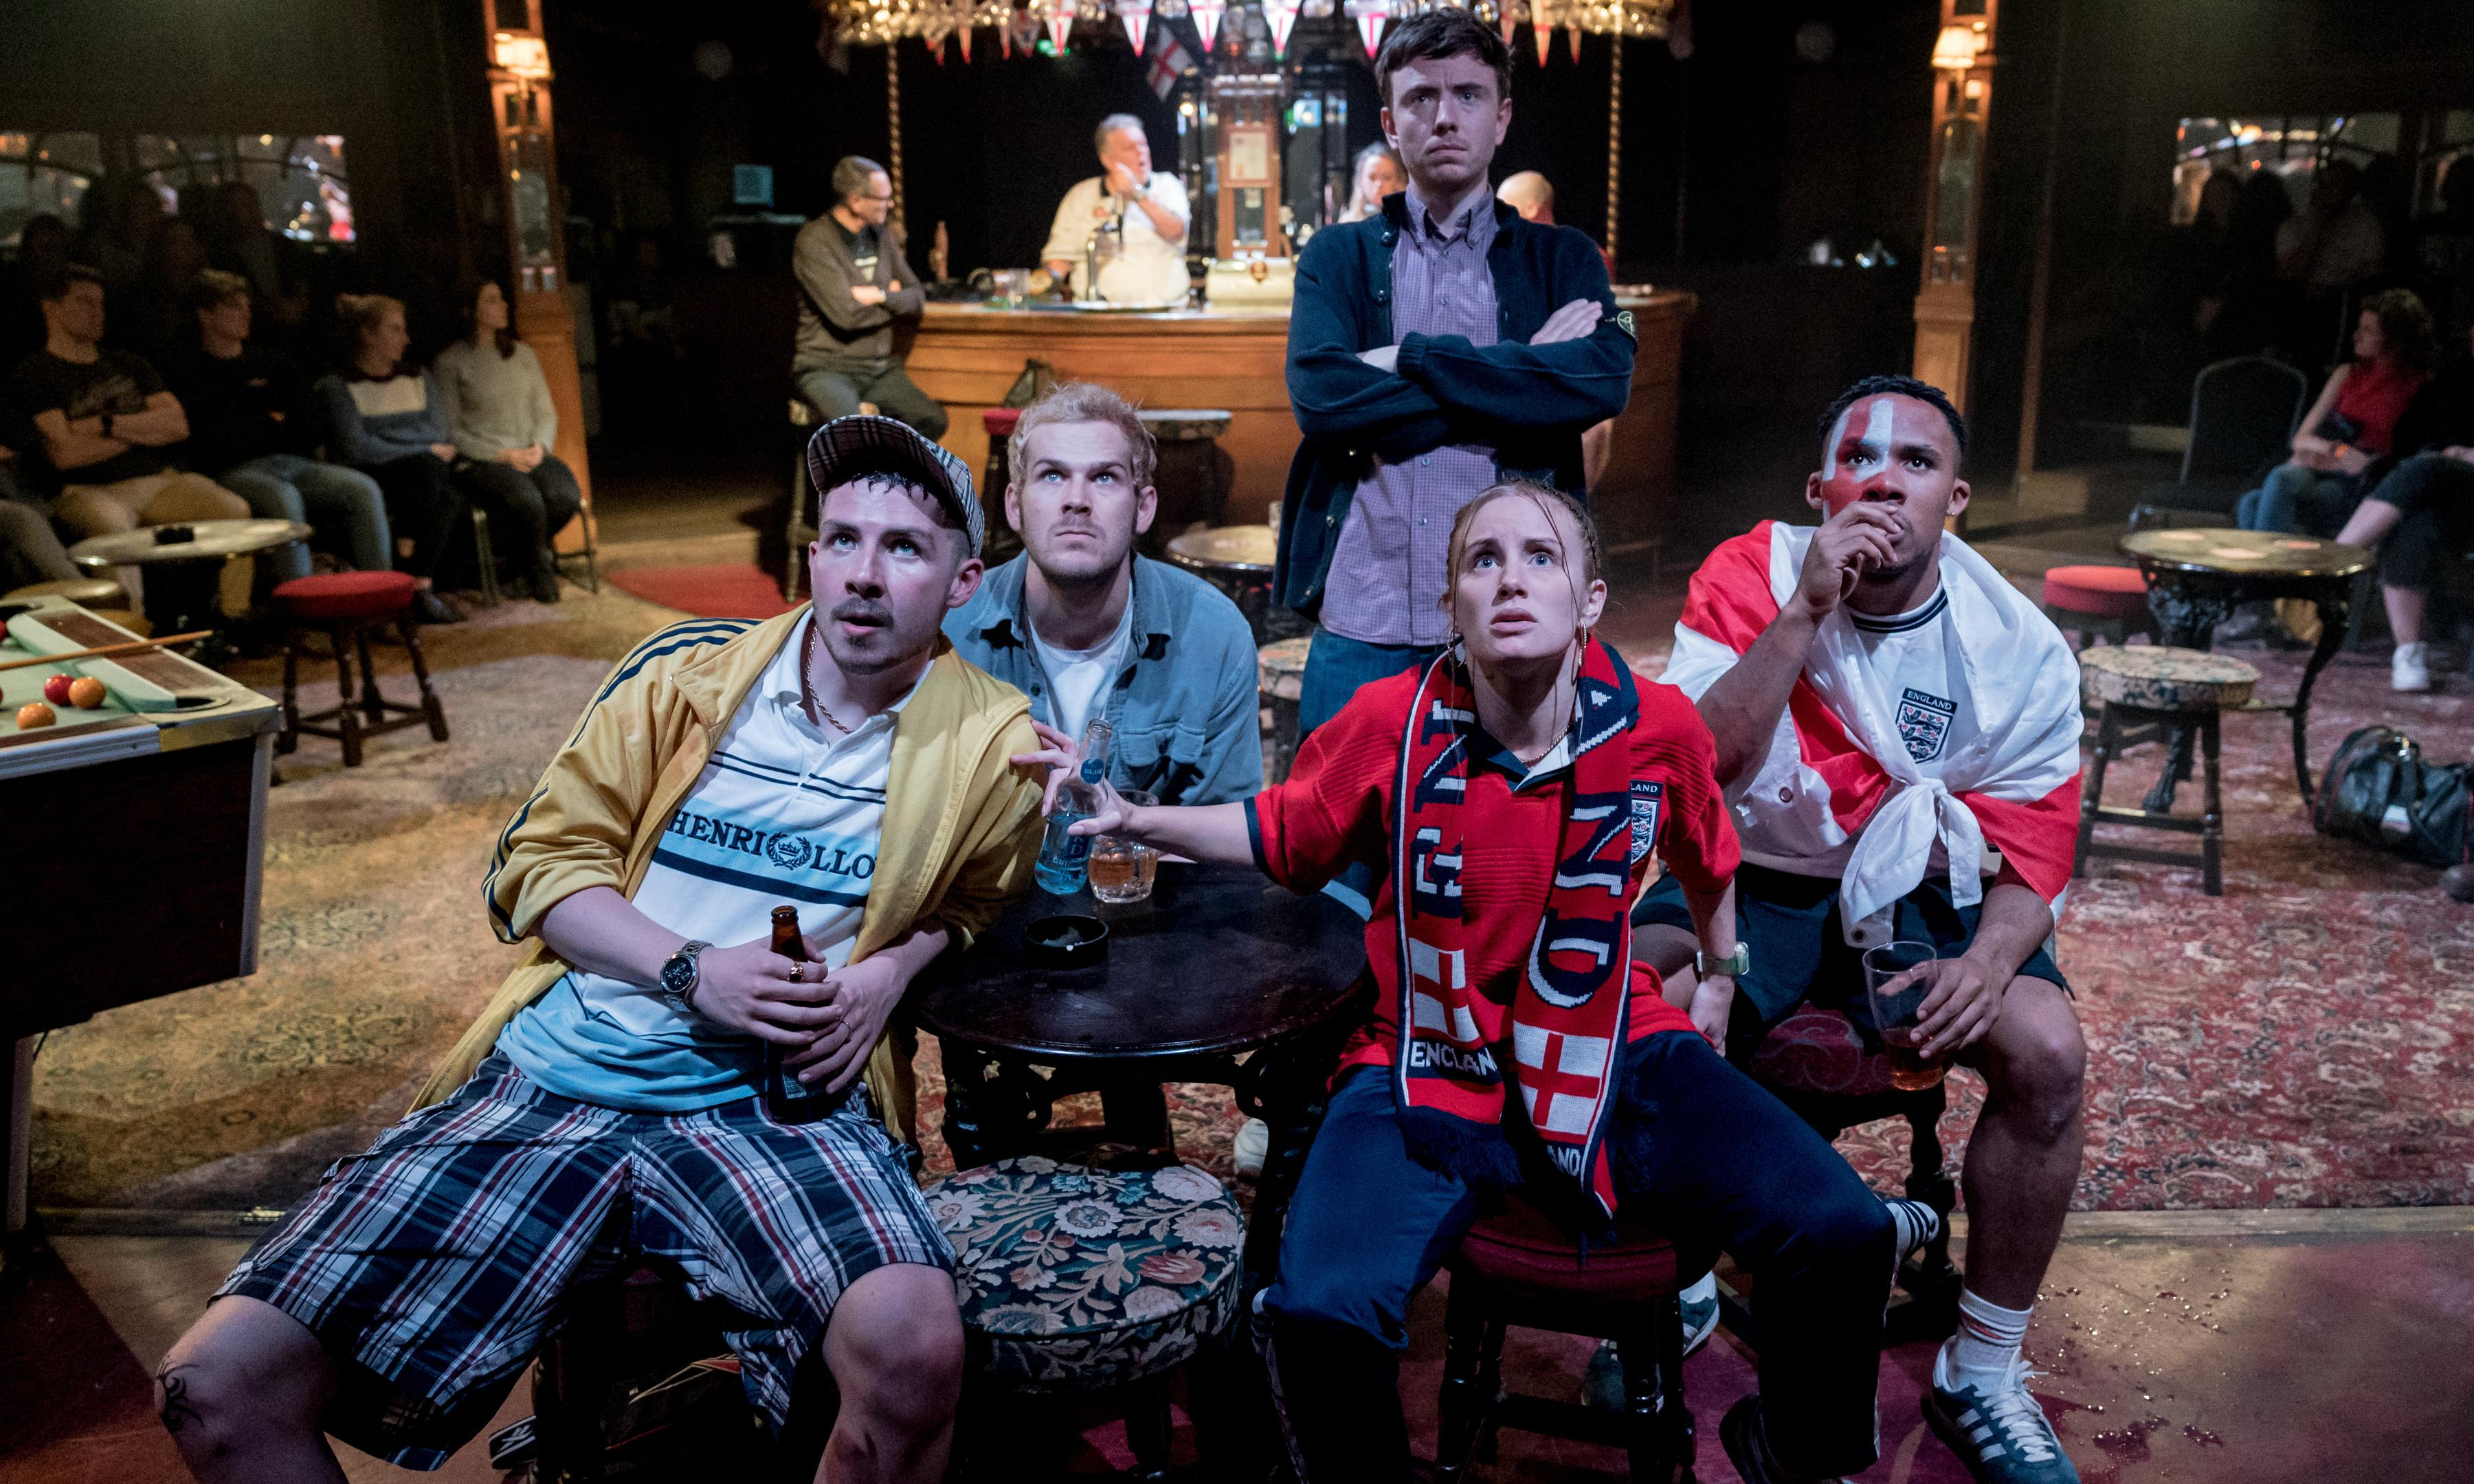 Sing Yer Heart Out for the Lads review – a modern classic that displays a sense of danger